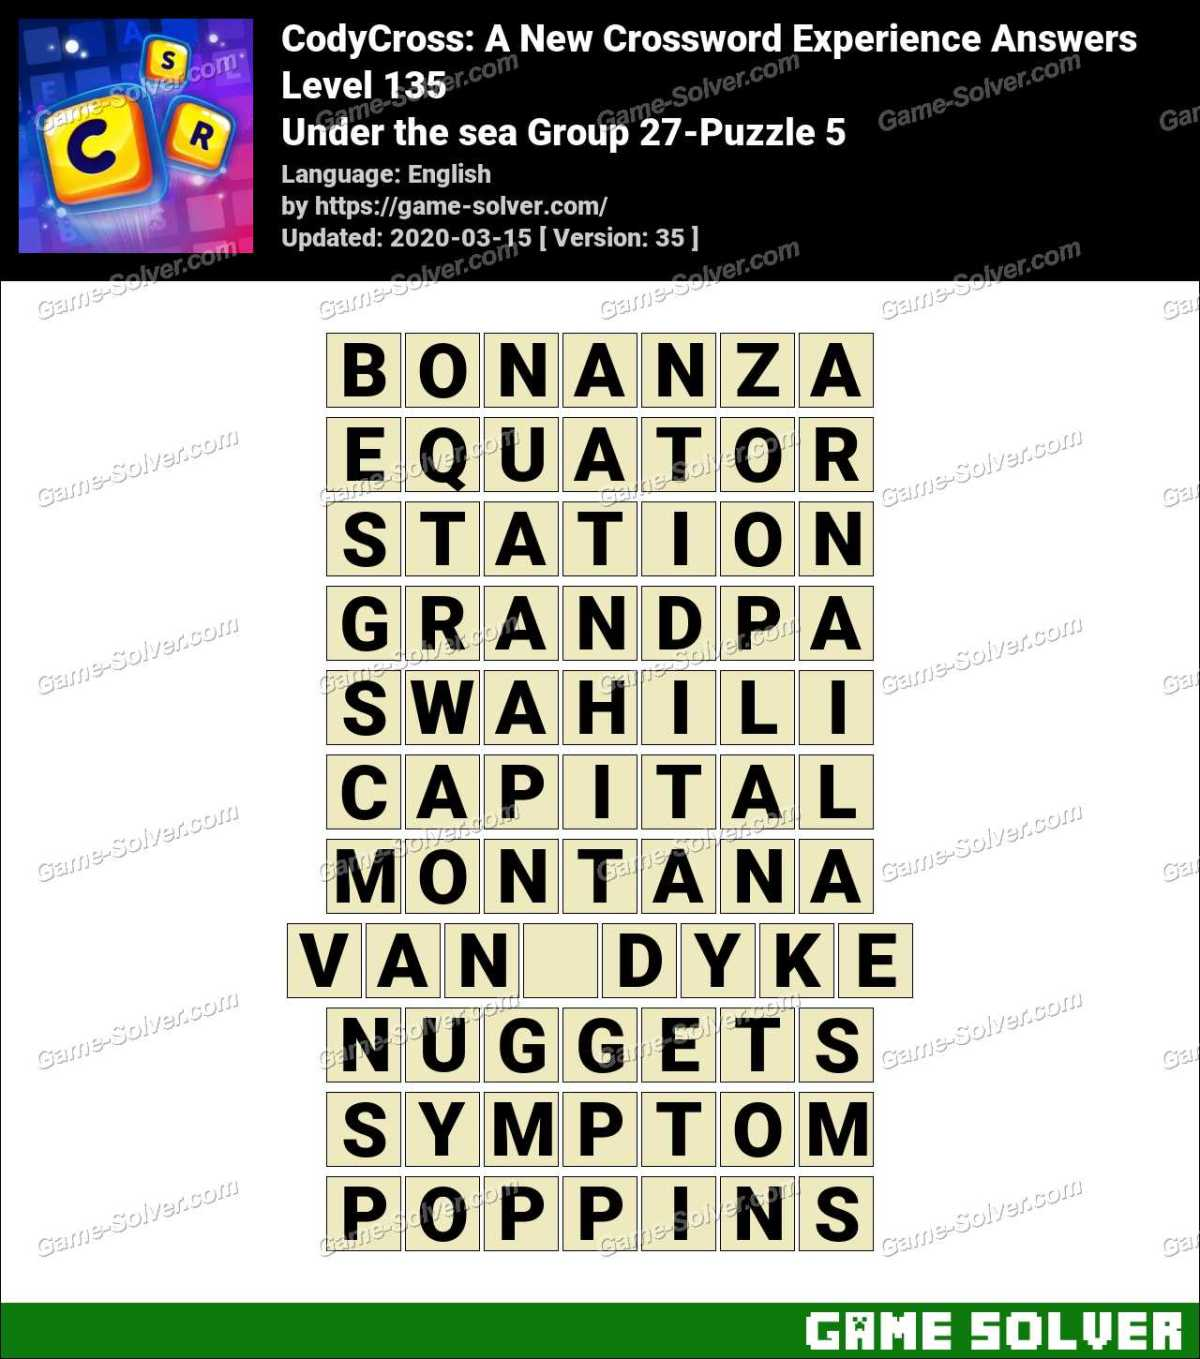 CodyCross Under the sea Group 27-Puzzle 5 Answers